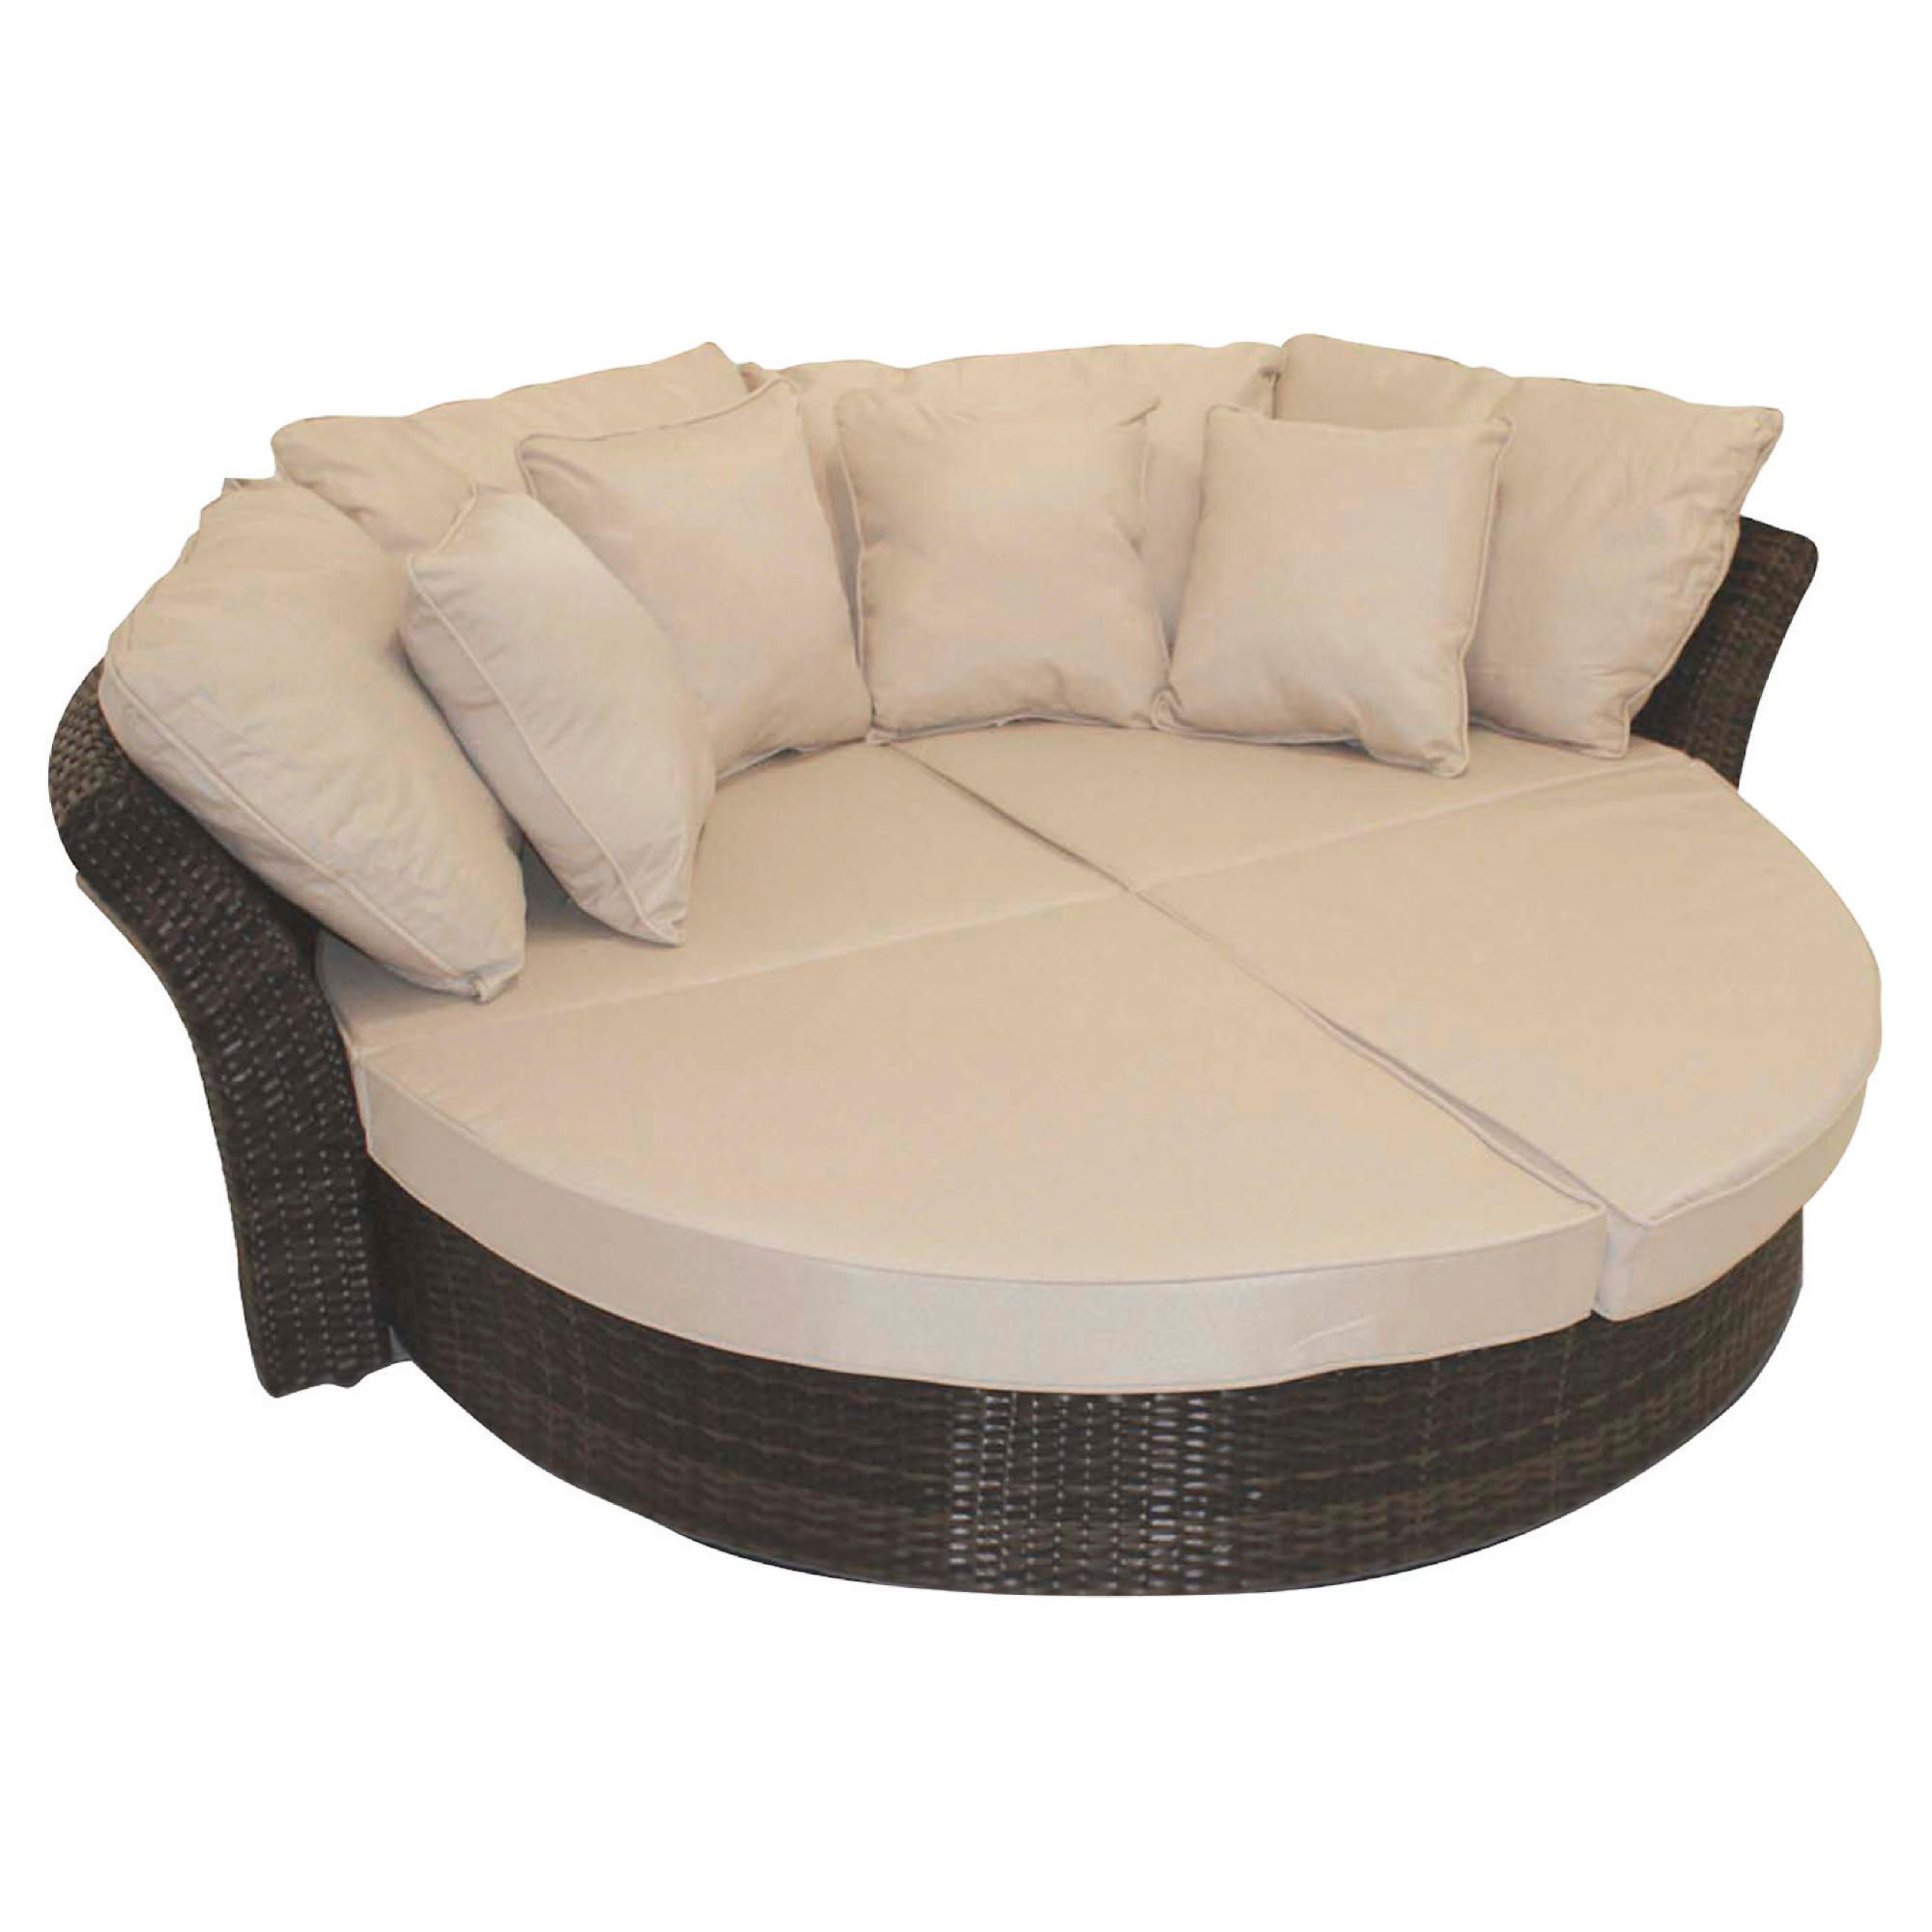 Mazerattan Bali Round Sofa Daybed at Tesco Direct